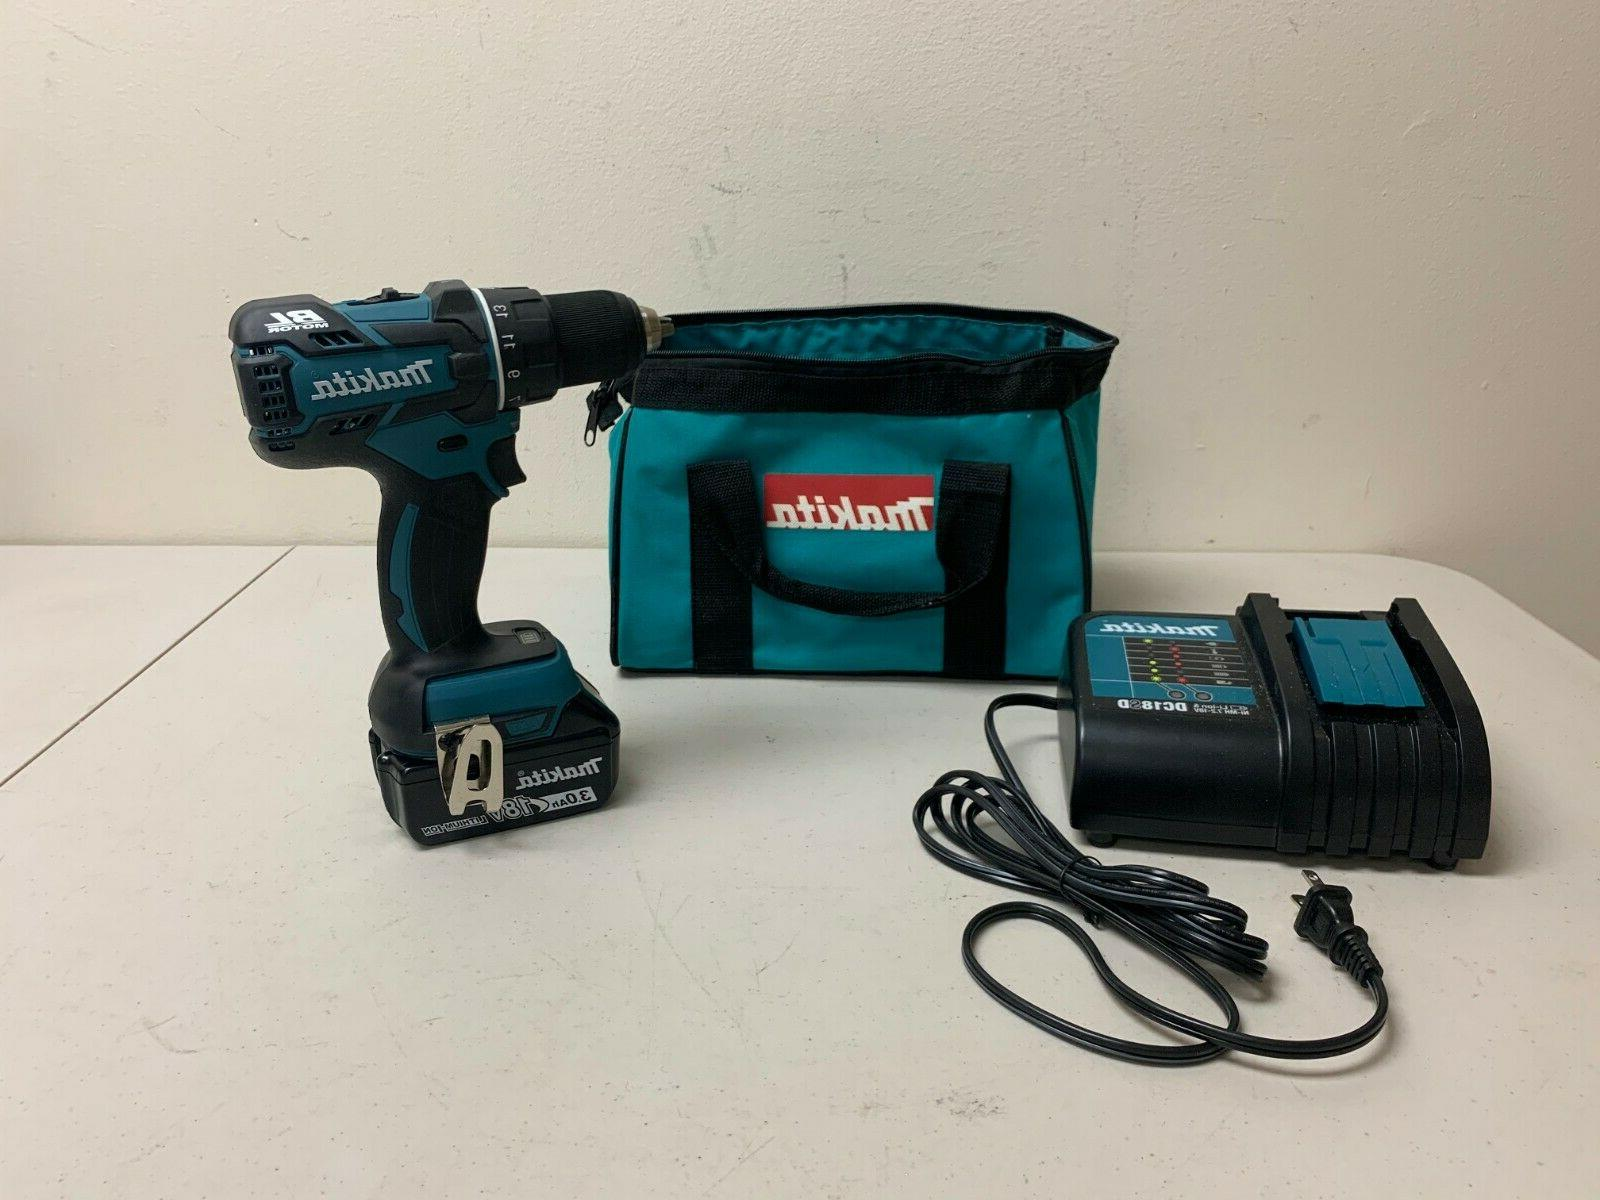 xfd061 18v compact cordless 1 2 inch